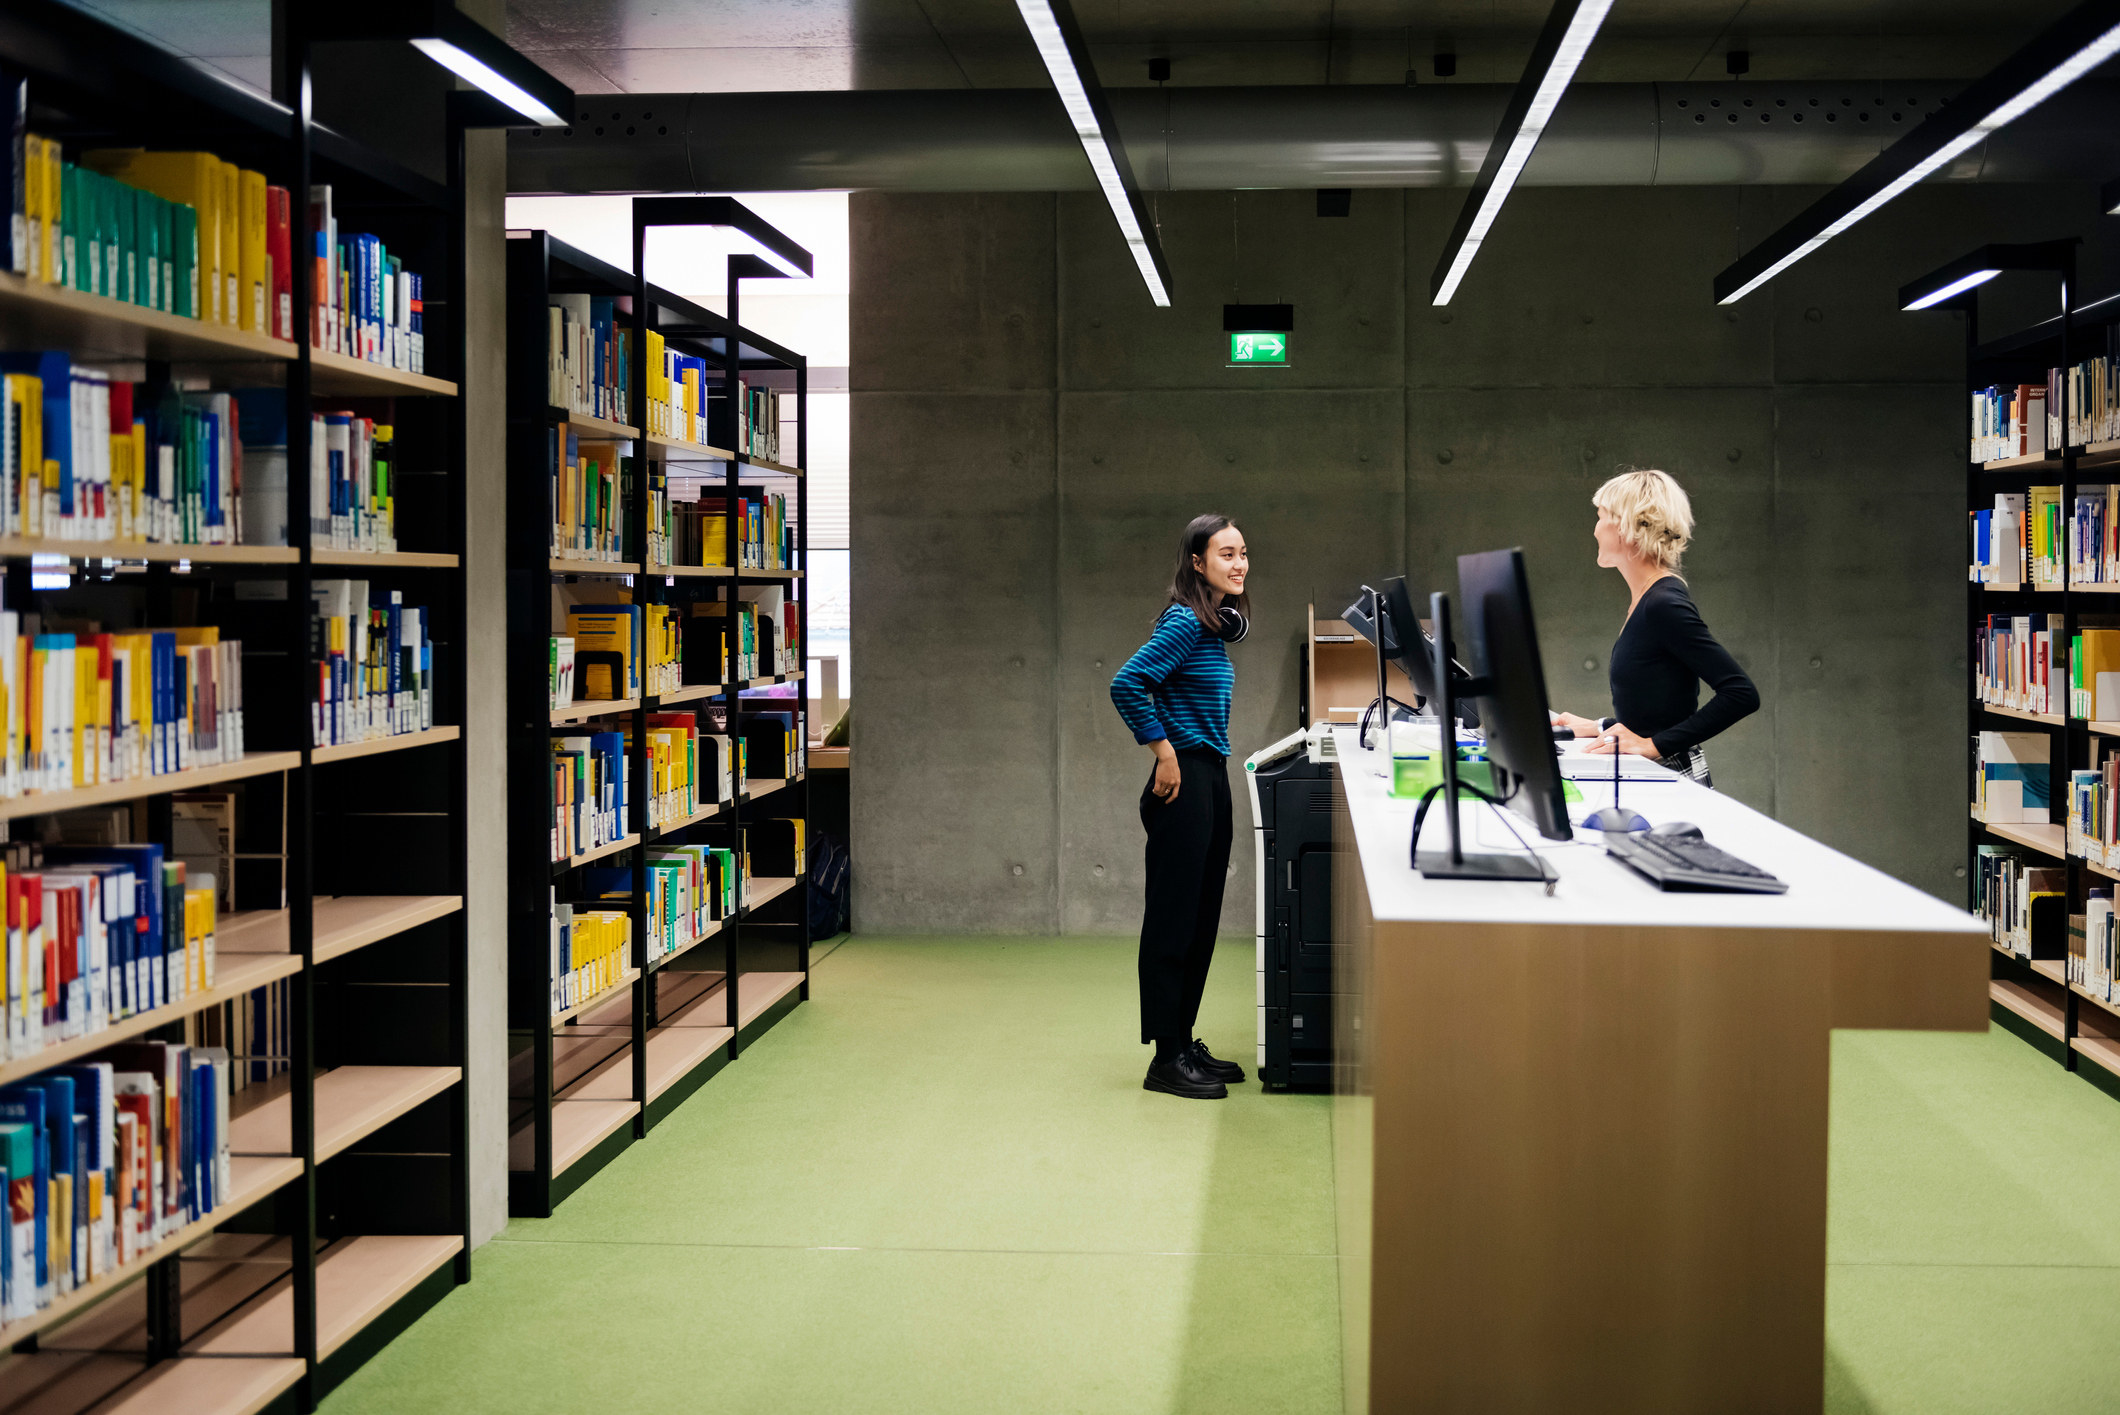 A student talking to a librarian, asking for help in a large, modern library.